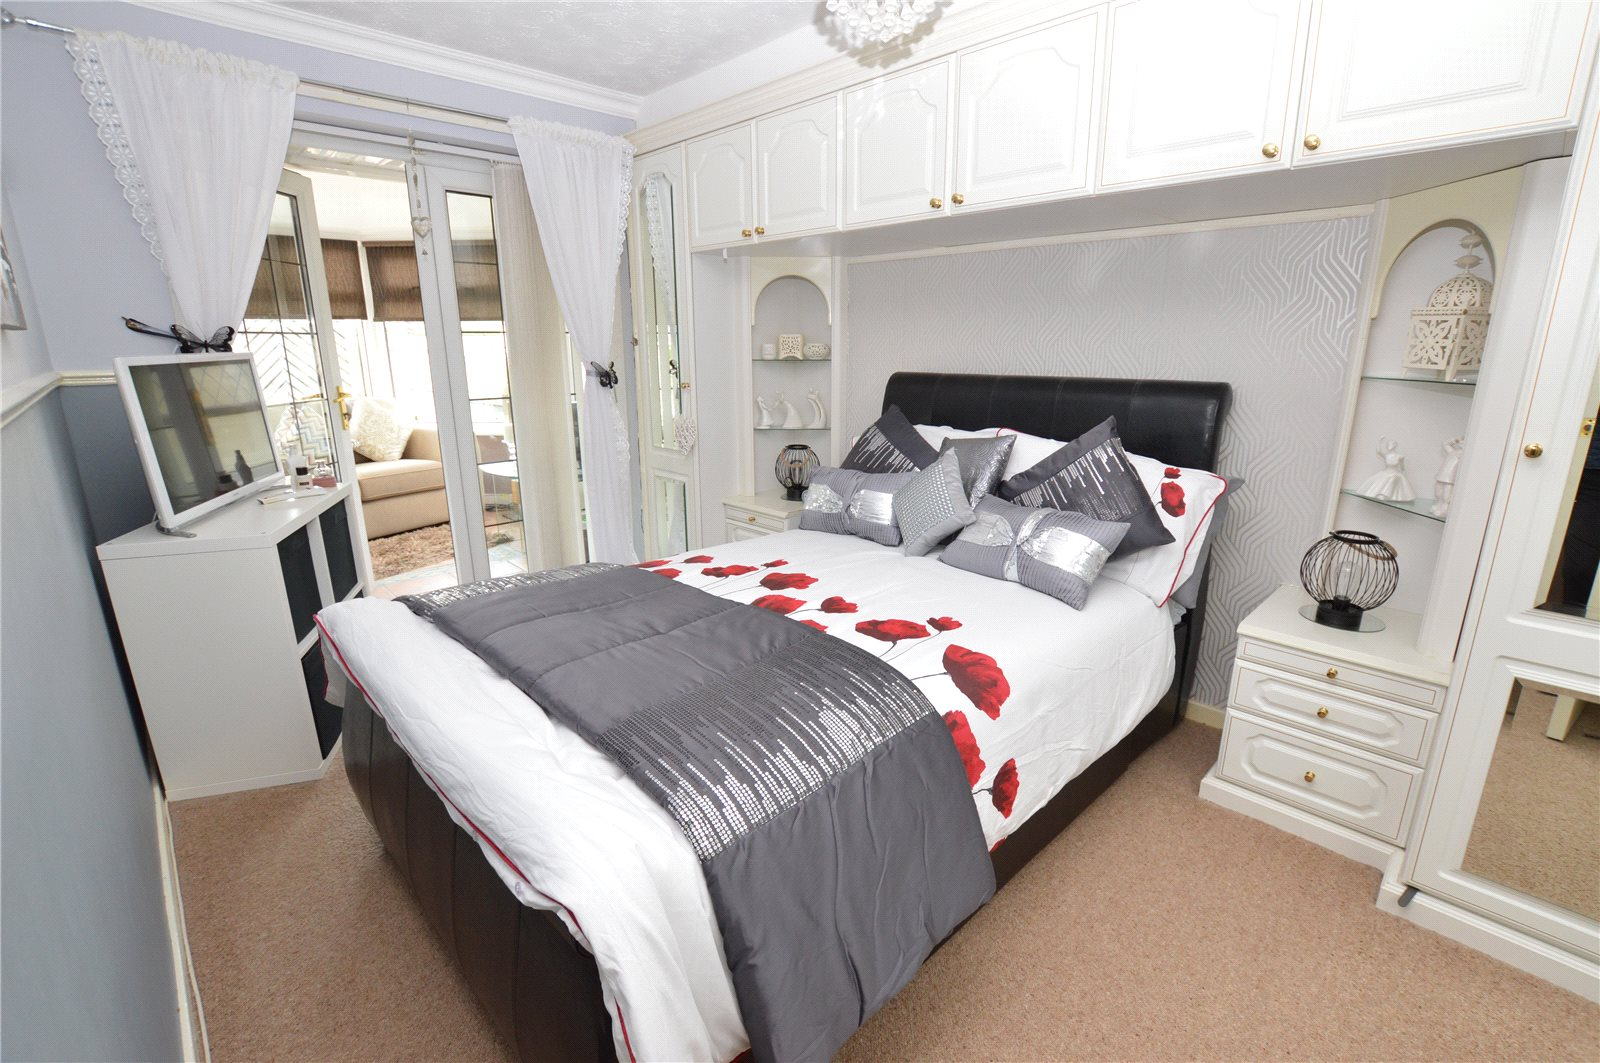 property for sale in crossgates, bedroom